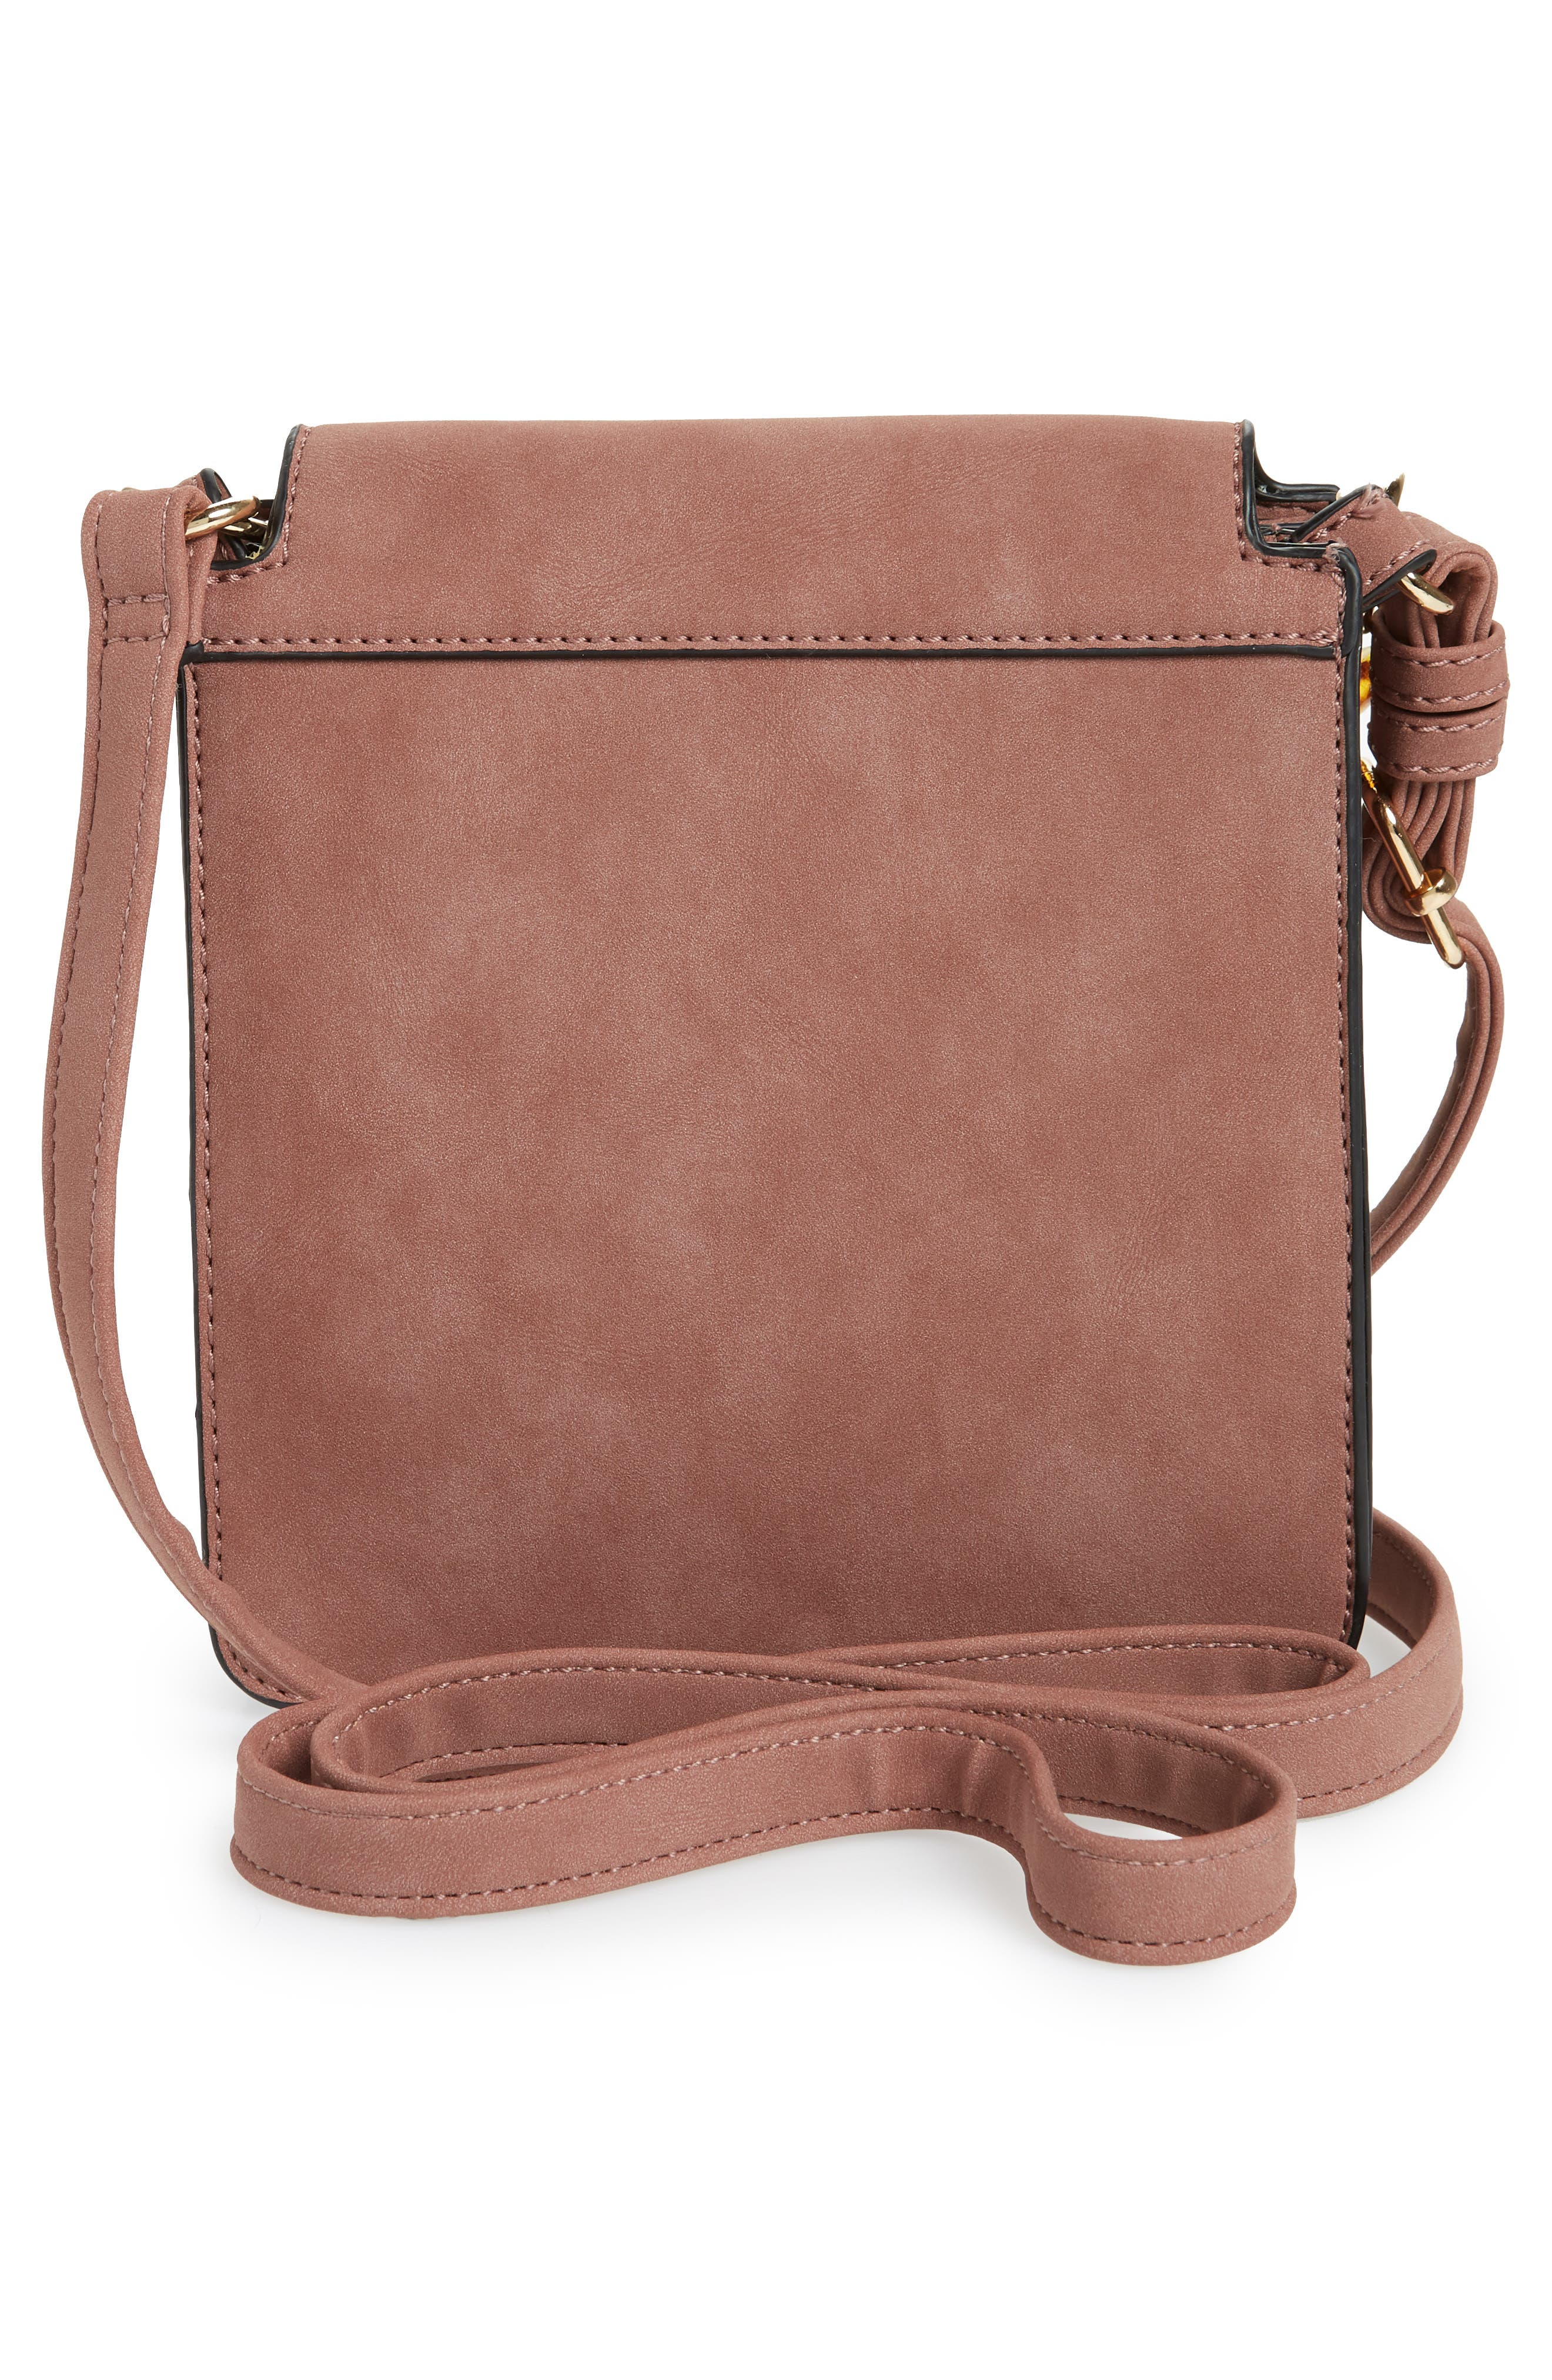 VIOLET RAY NEW YORK, Faux Leather Crossbody Bag, Alternate thumbnail 4, color, 250